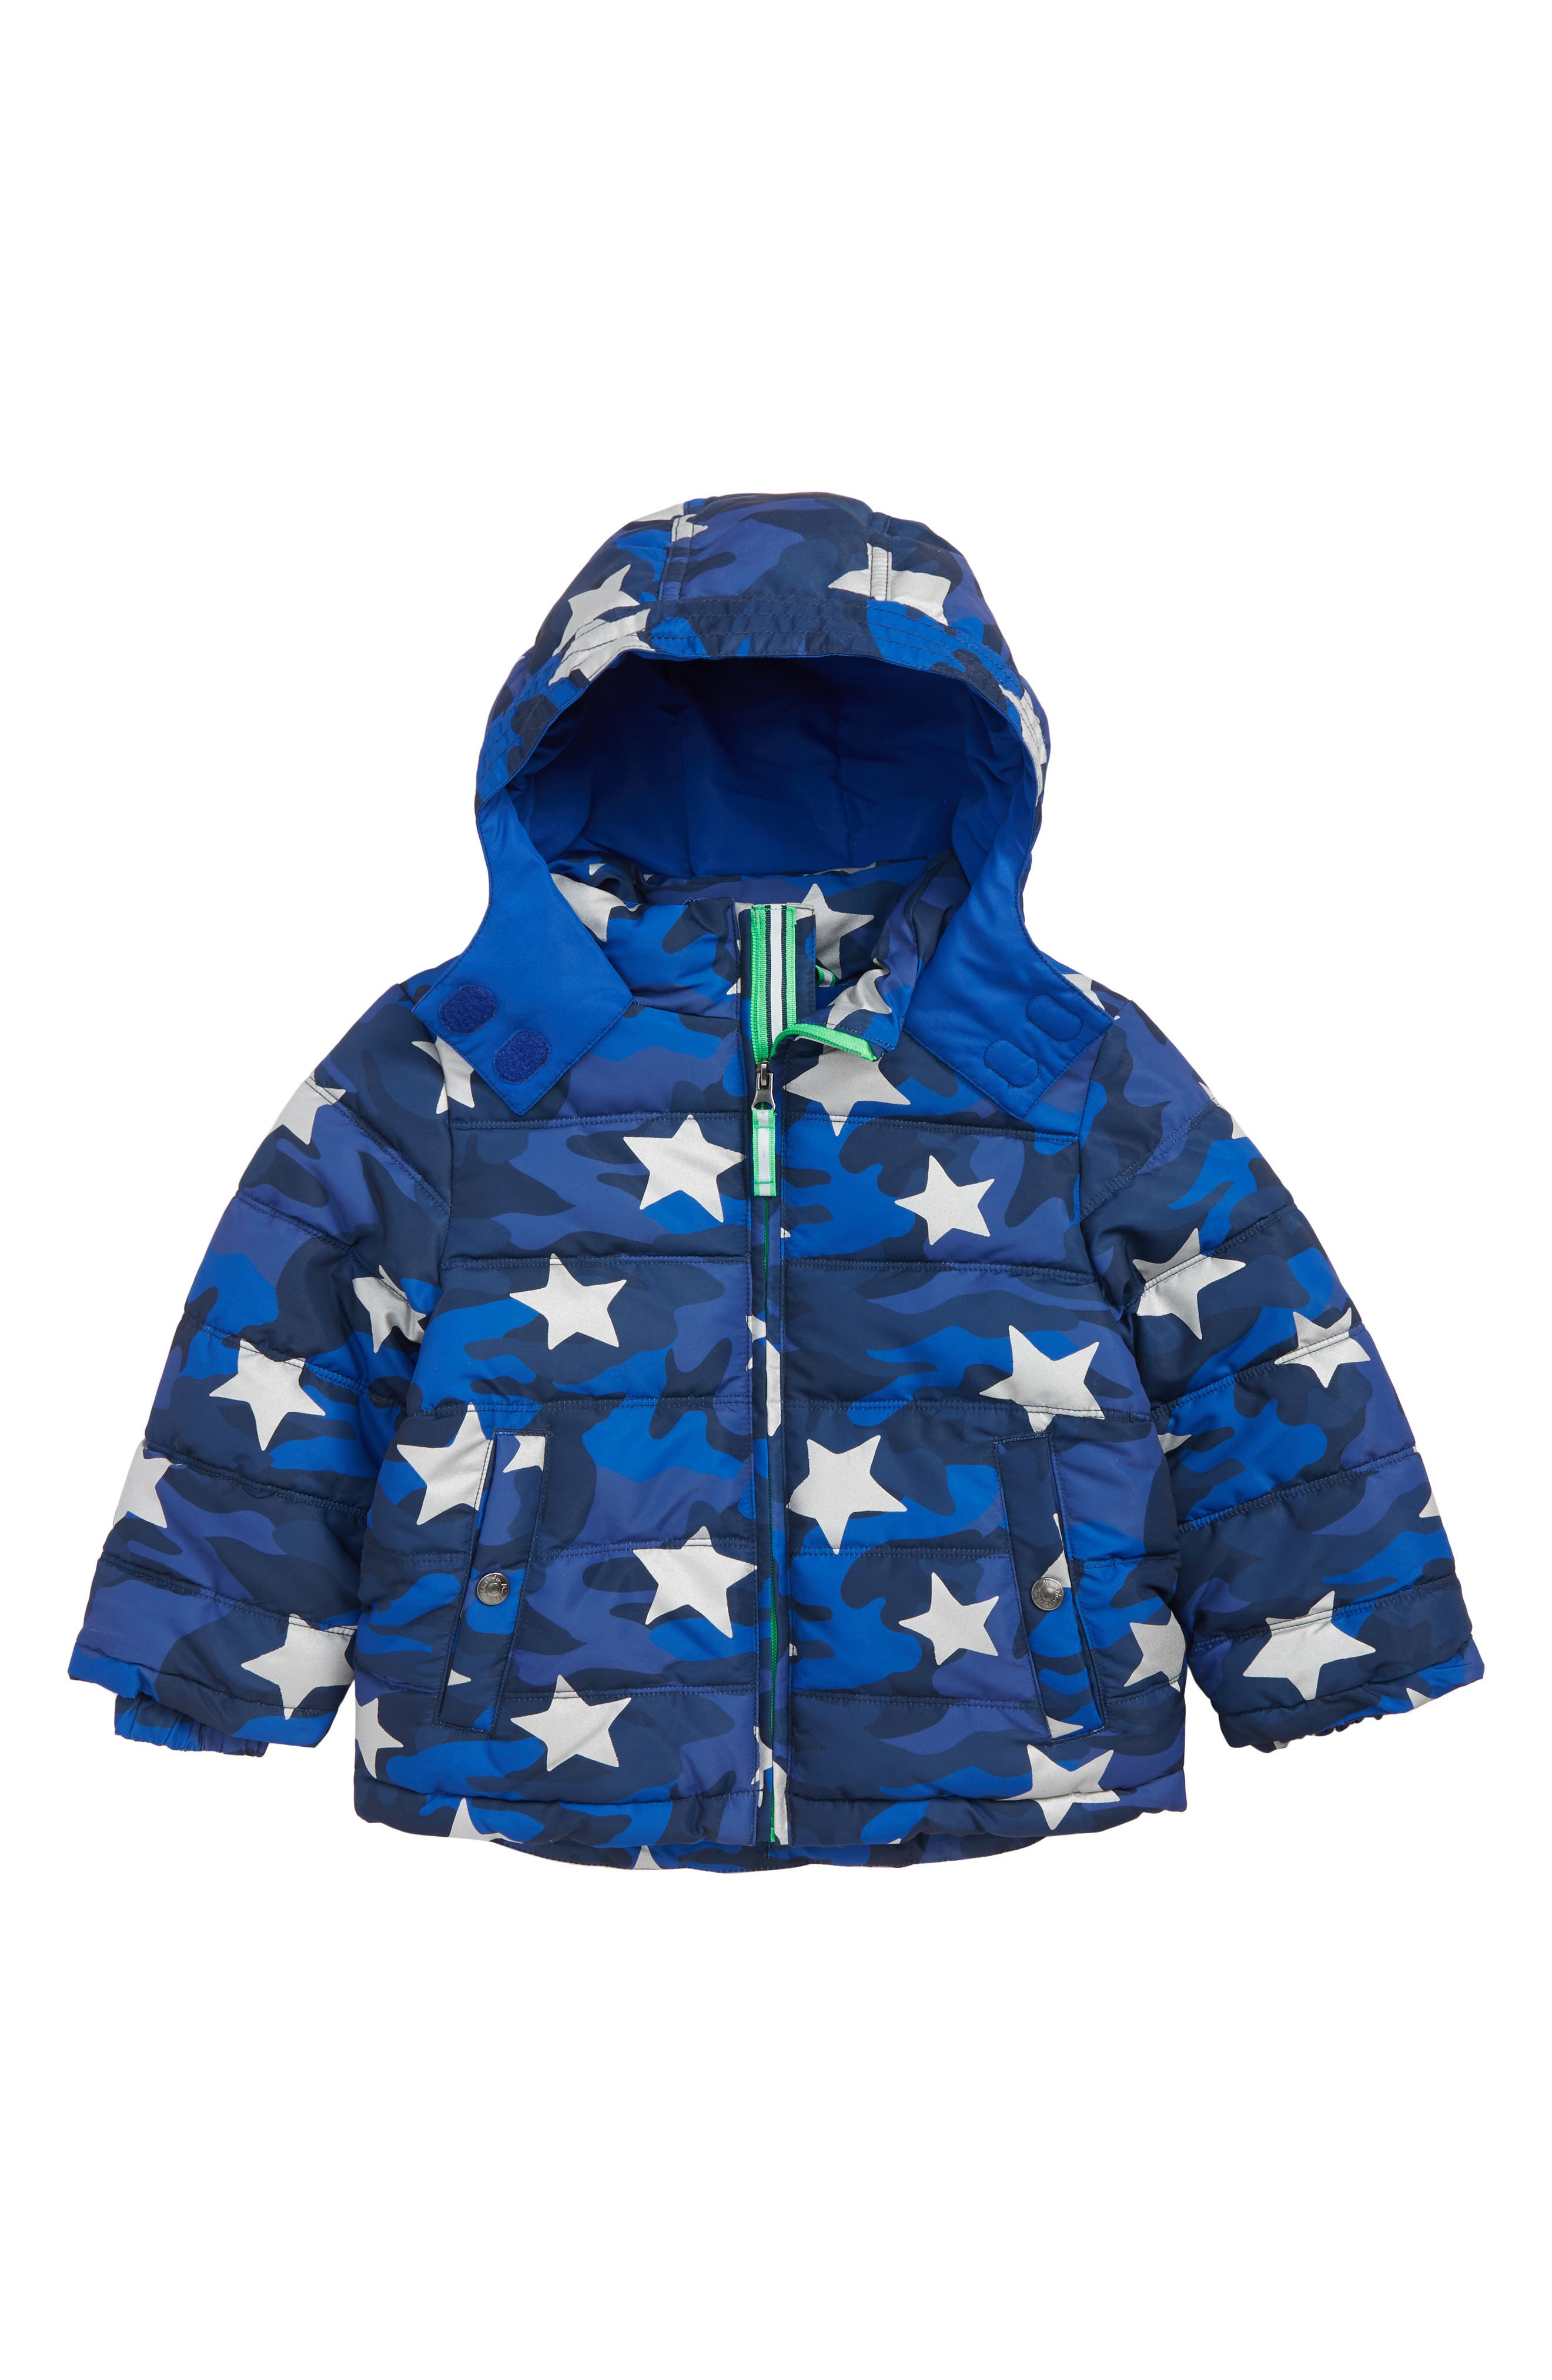 MINI BODEN,                             High Visibility Water Resistant Quilted Coat,                             Main thumbnail 1, color,                             BLUE SCHOOL NAVY CAMO STAR